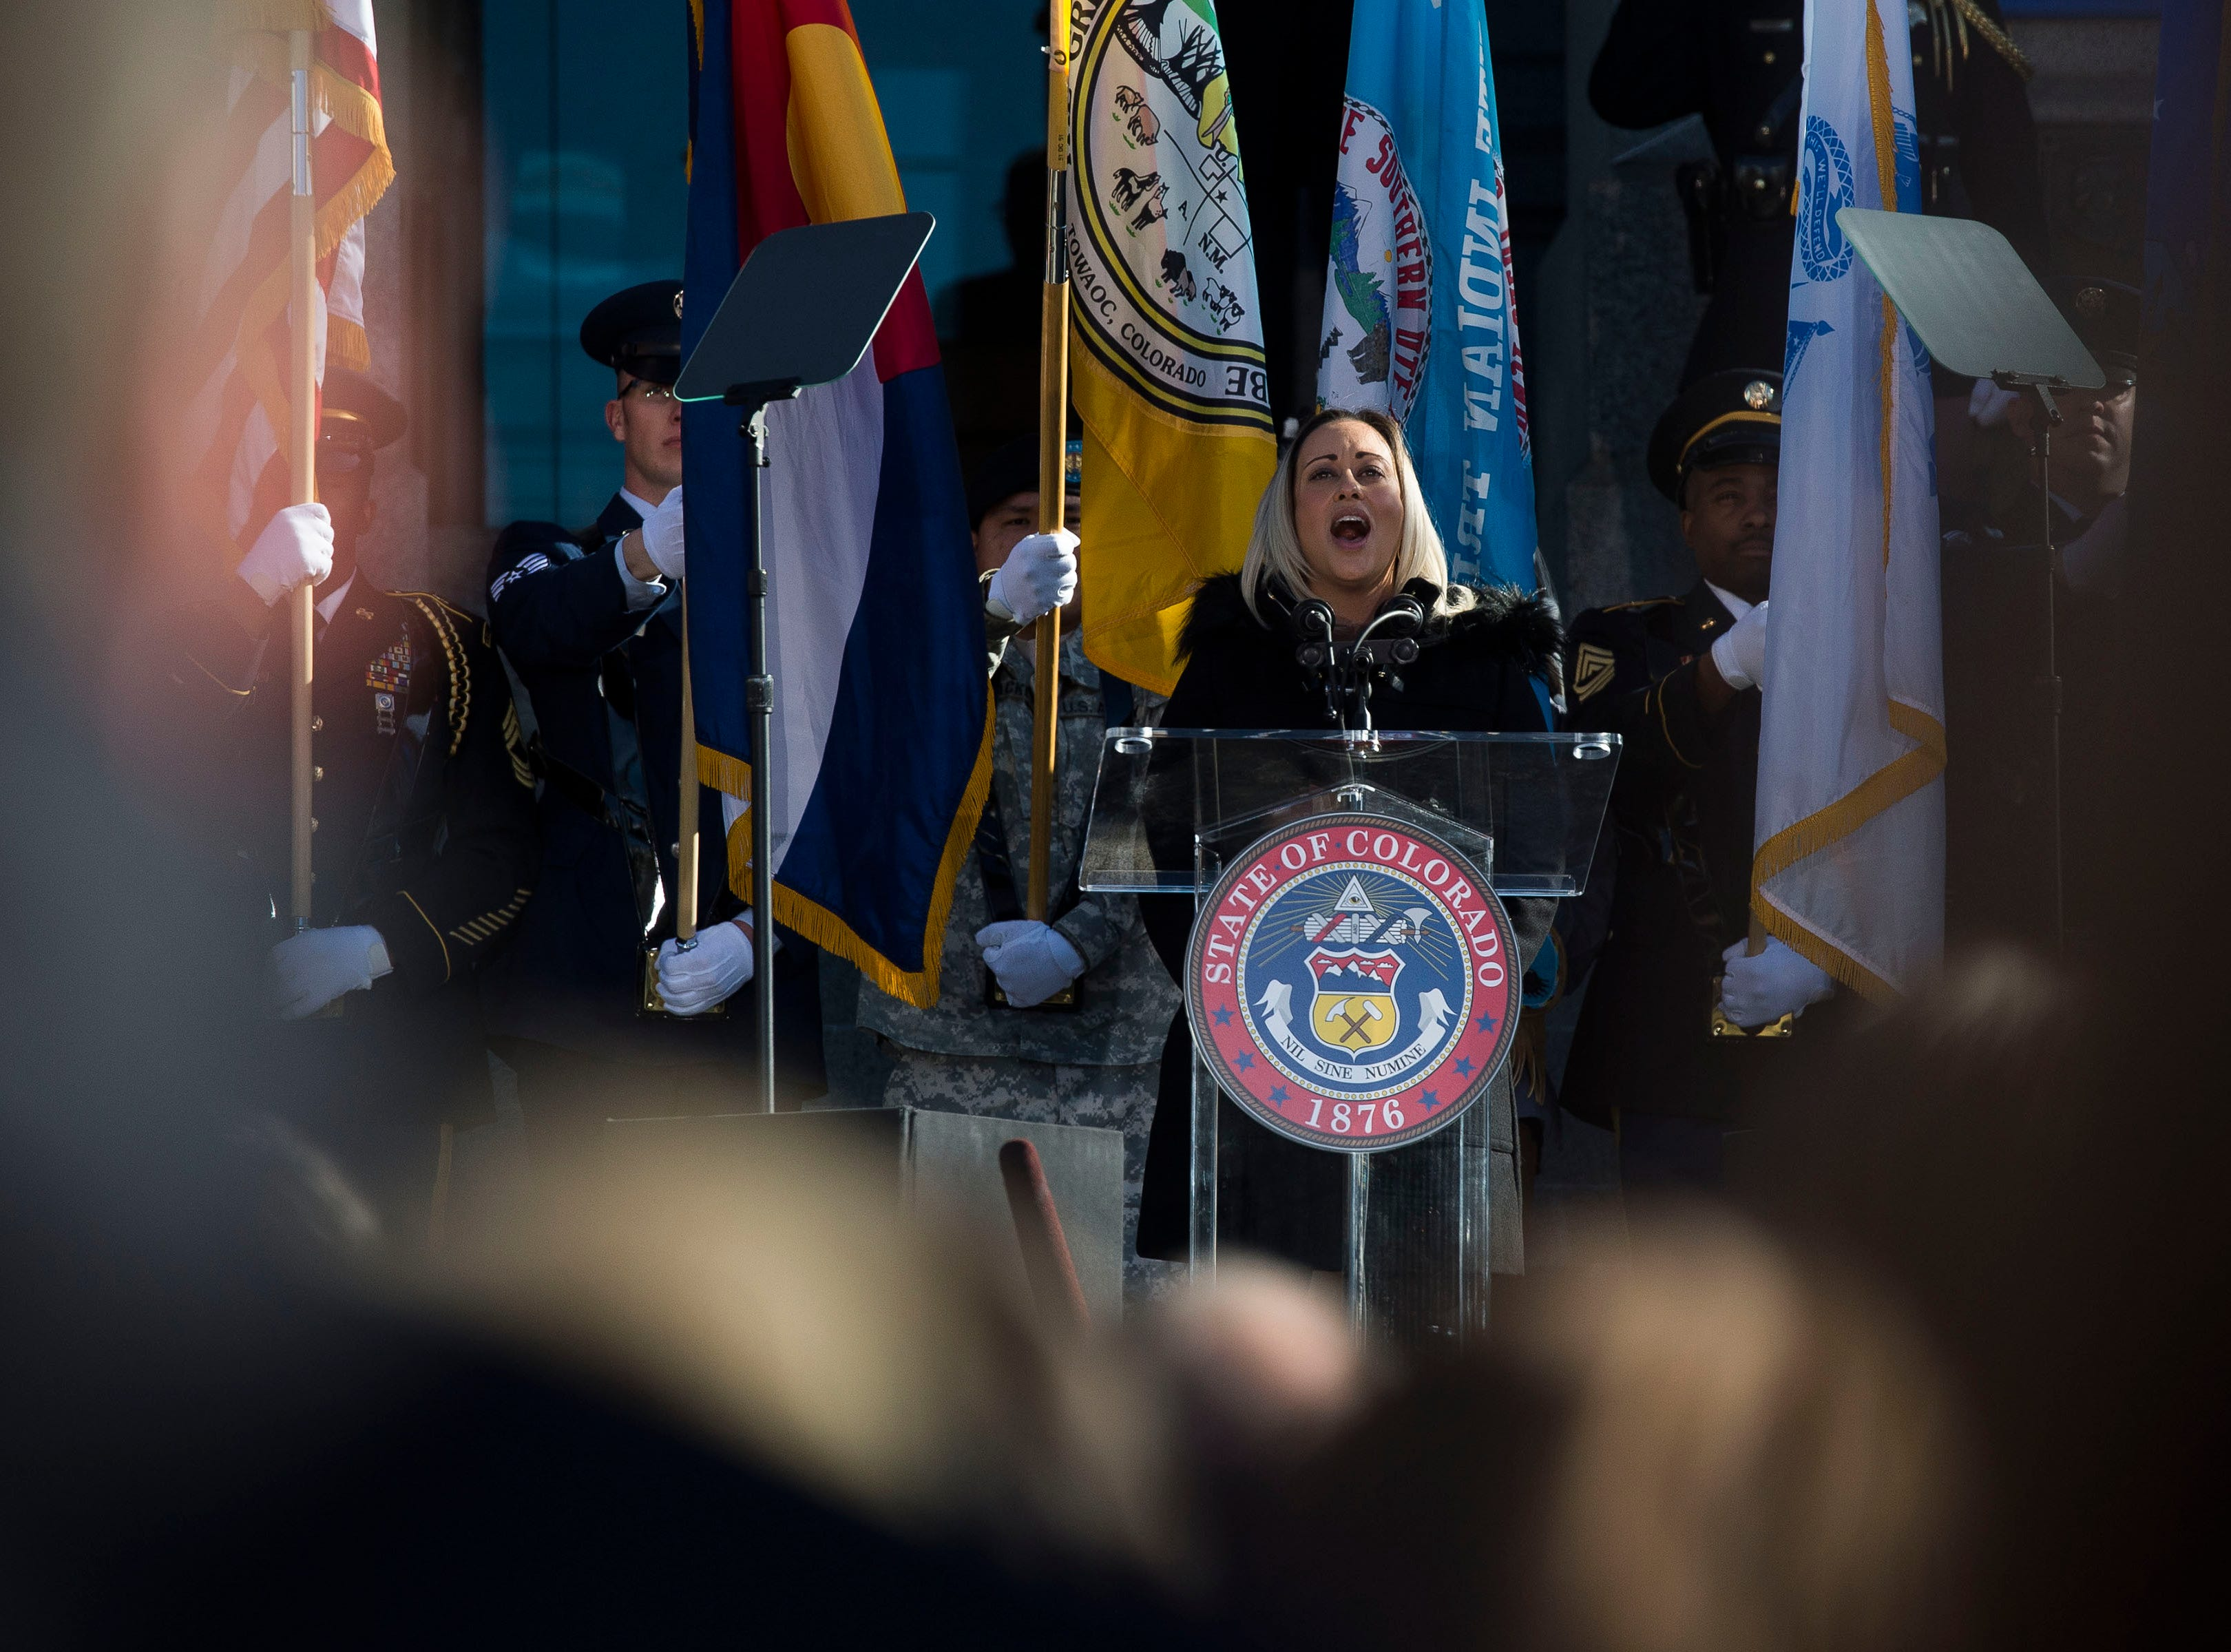 Andrea Neidig performs the National Anthem during the inauguration of Colorado State Governor Jared Polis on Tuesday, Jan. 8, 2019, in front of the Colorado State Capital building in Denver, Colo.